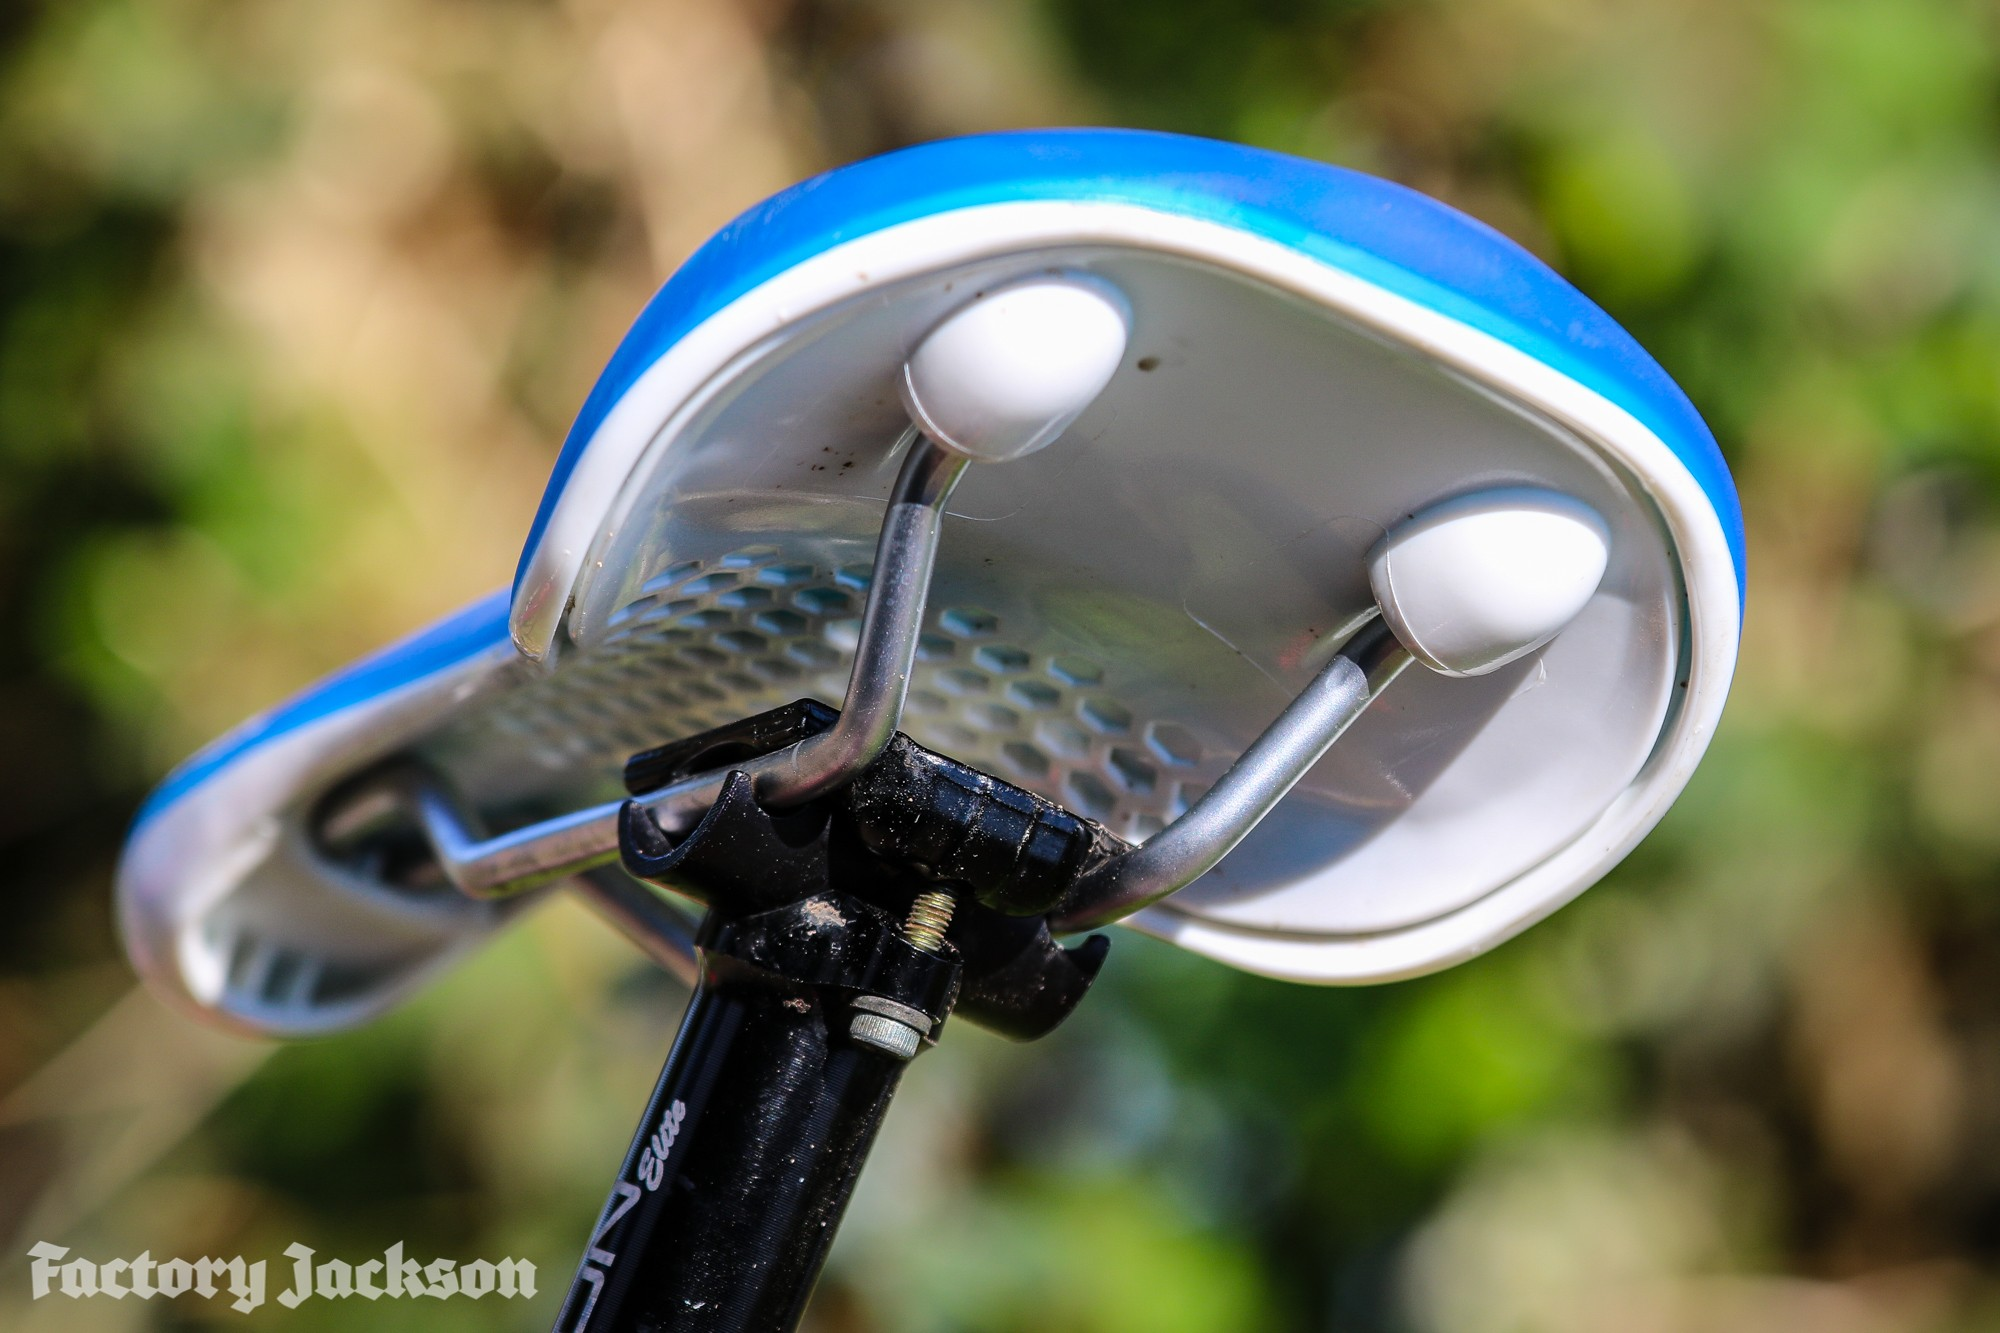 31197edc306 Fabric Cell air sprung saddle review - Factory Jackson Factory Jackson